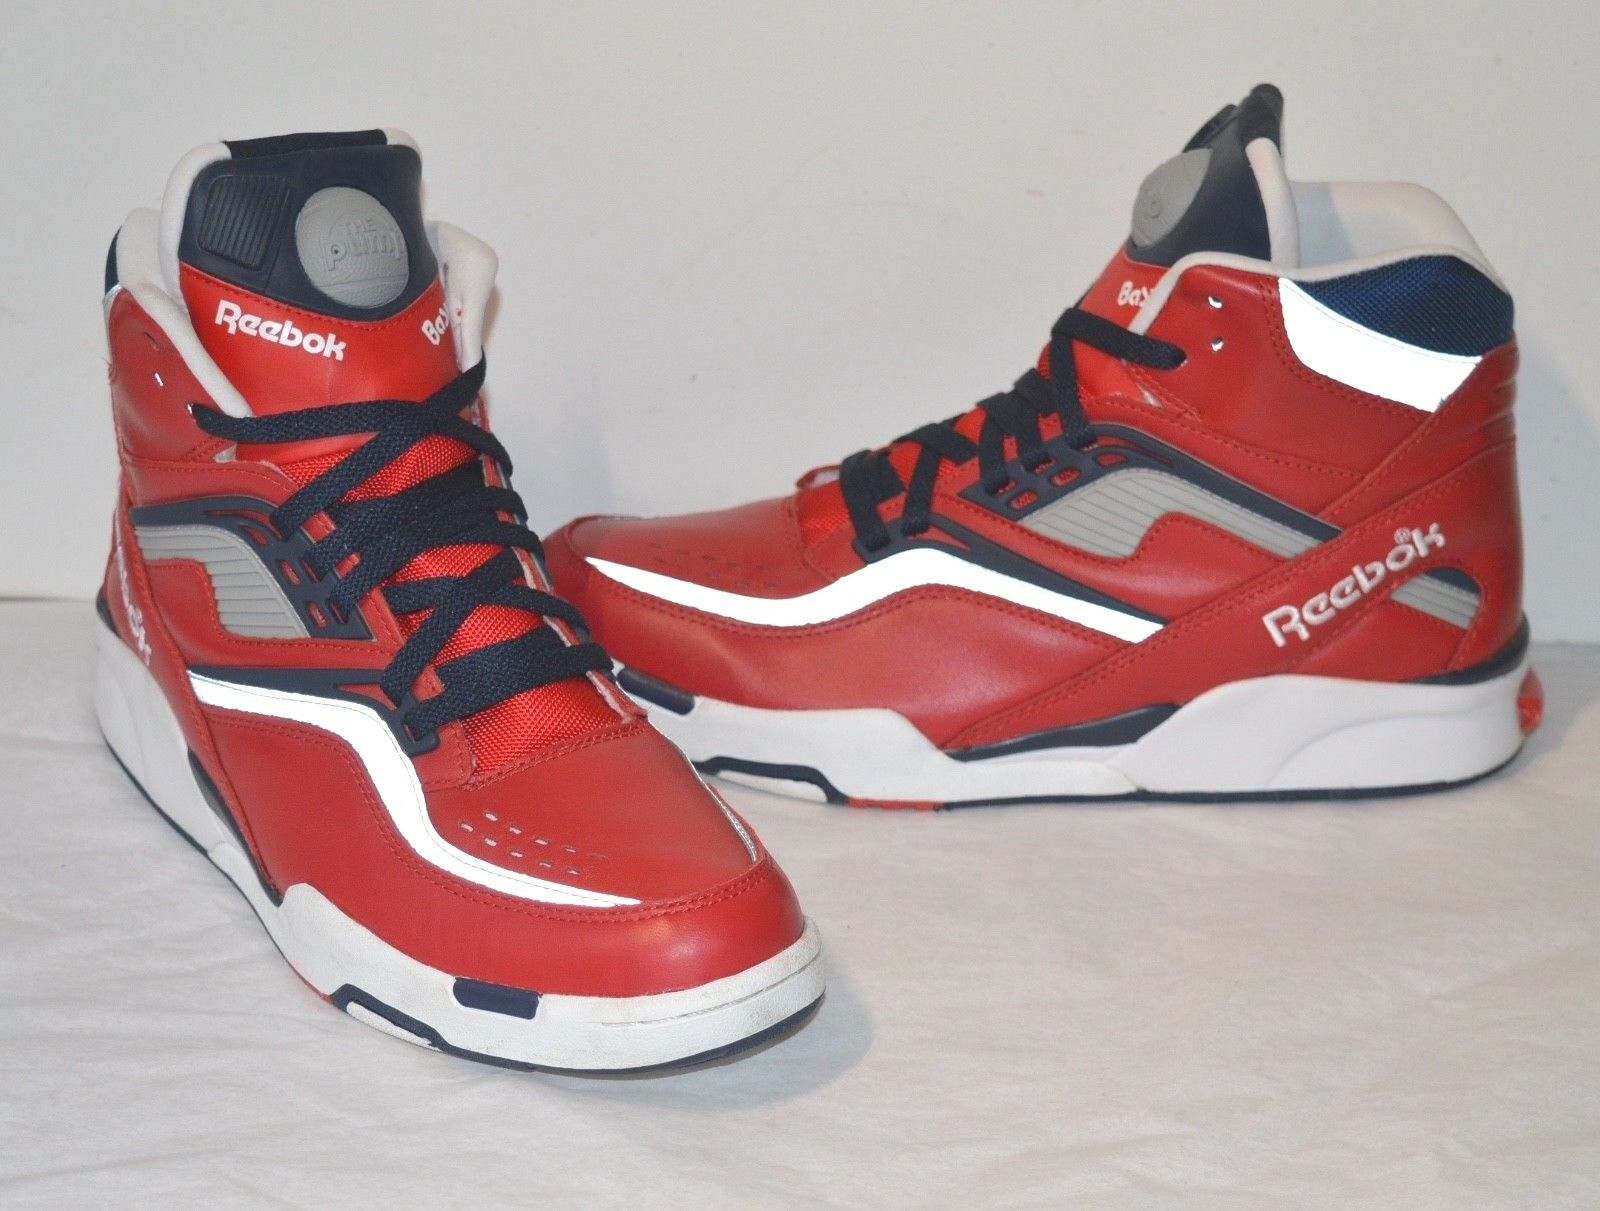 16150c494cf9 New Reebok Twilight Zone Pump OLYMPIC OLYMPIC OLYMPIC Red Navy White Silver  Reflective sz 11 7e31a8 ...